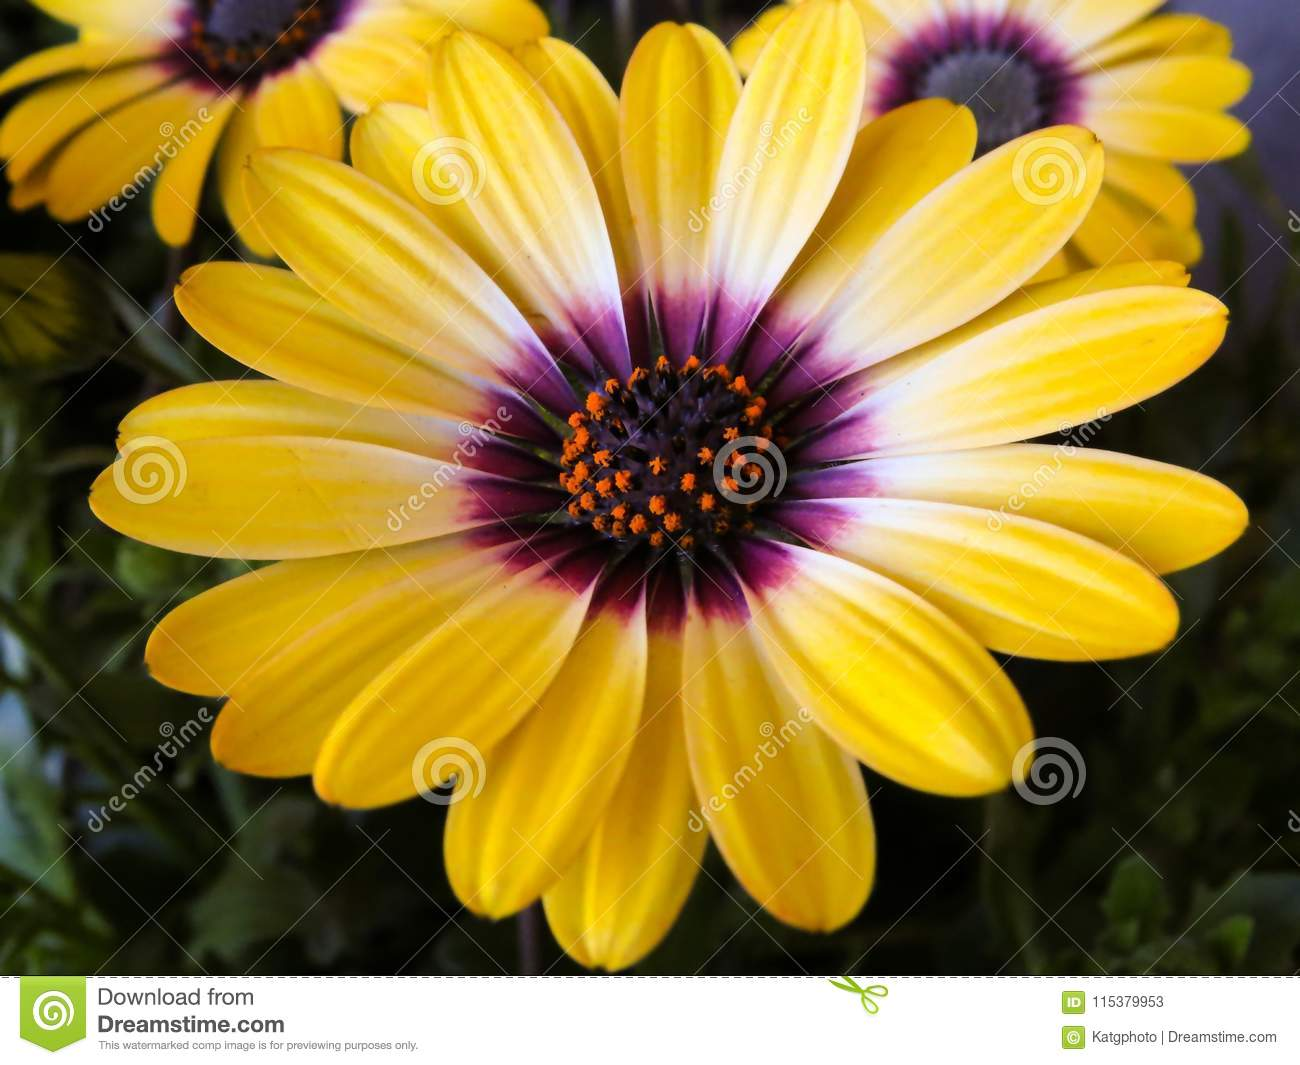 Yellow and purple african daisy flowers in the green plant leaves download yellow and purple african daisy flowers in the green plant leaves stock image image izmirmasajfo